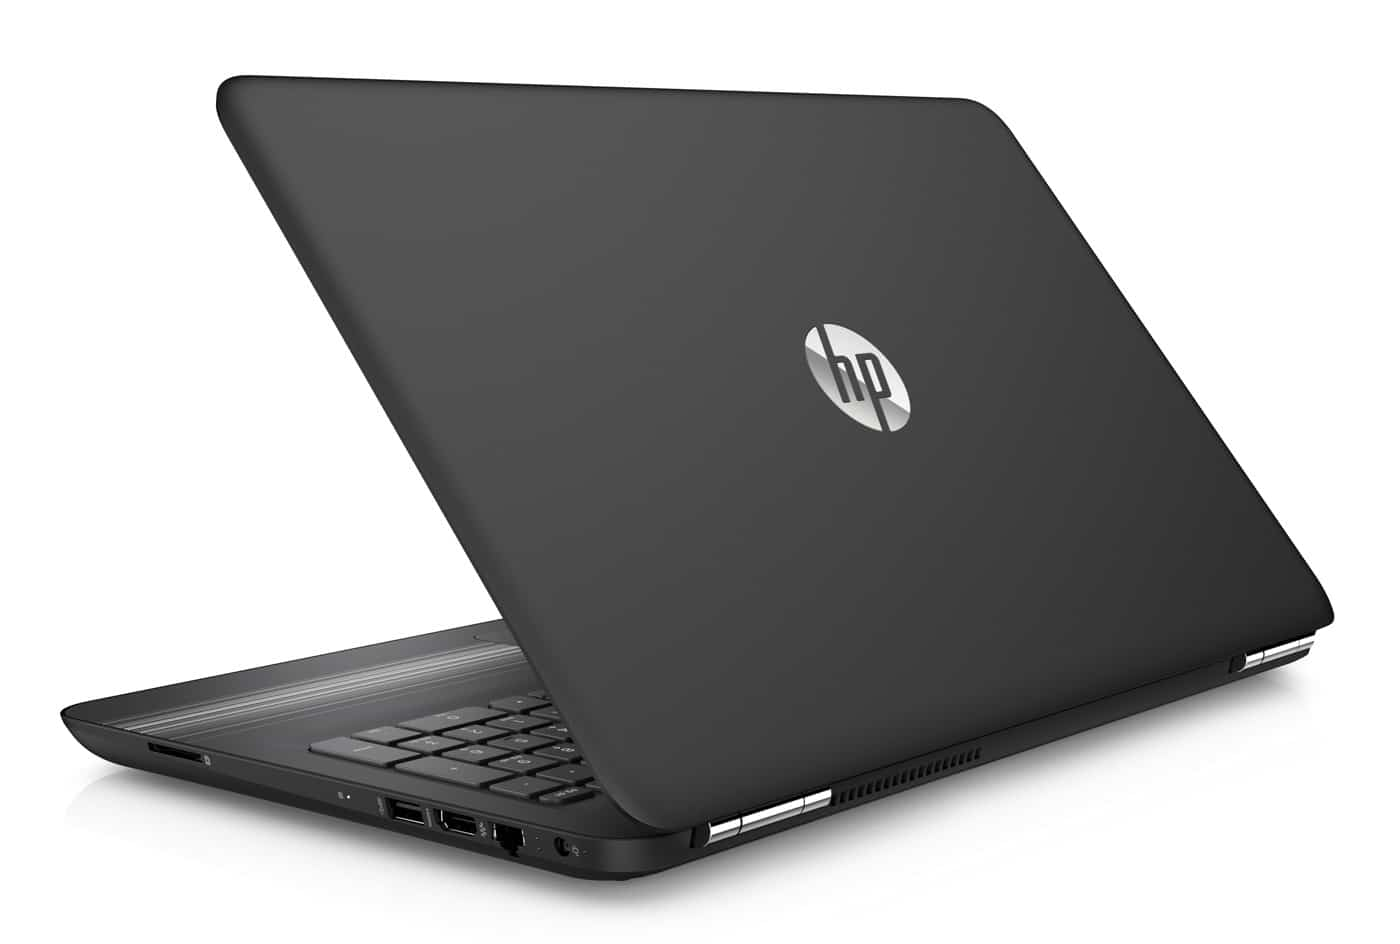 HP Pavilion 15-au102nf, PC portable 15 pouces Kaby Lake i7 SSD+HDD 8Go 999€